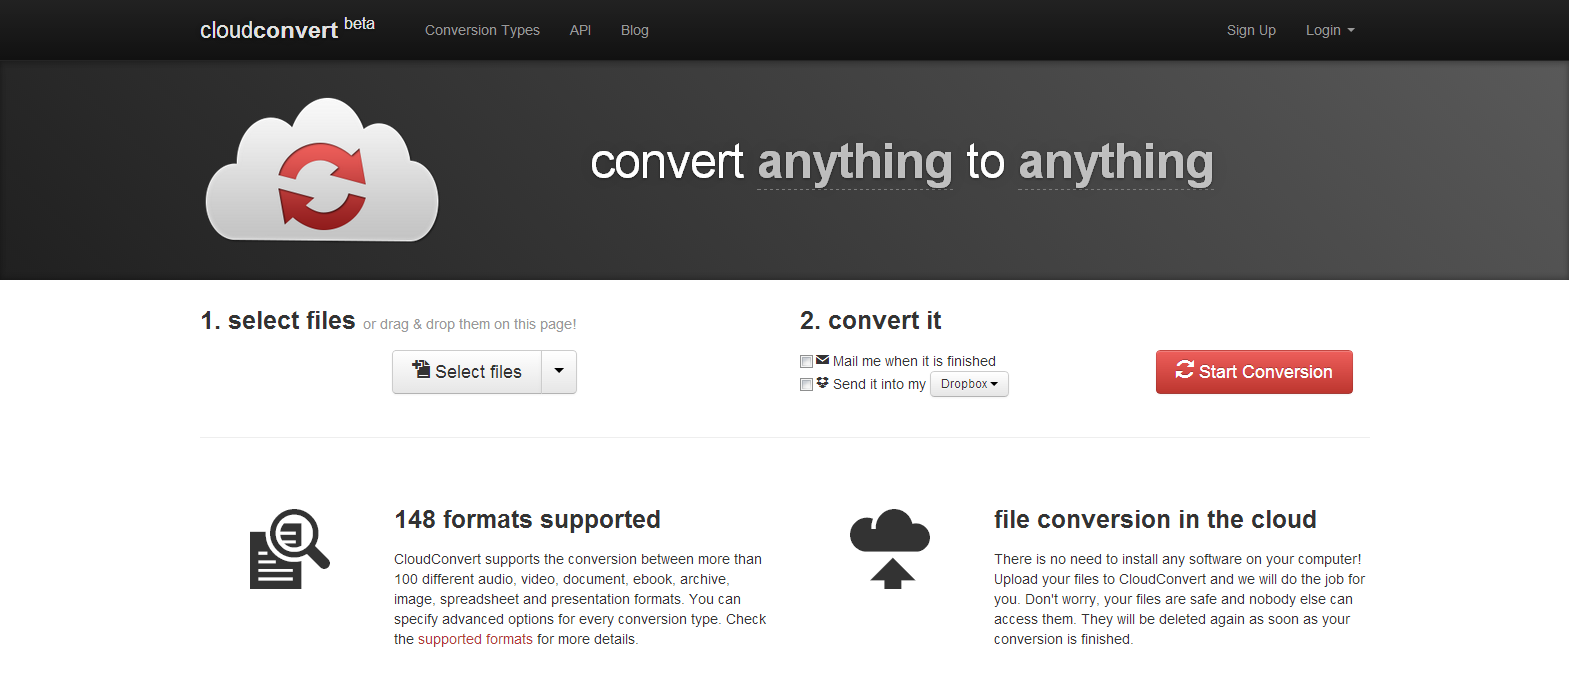 CloudConvert convert anything to anything